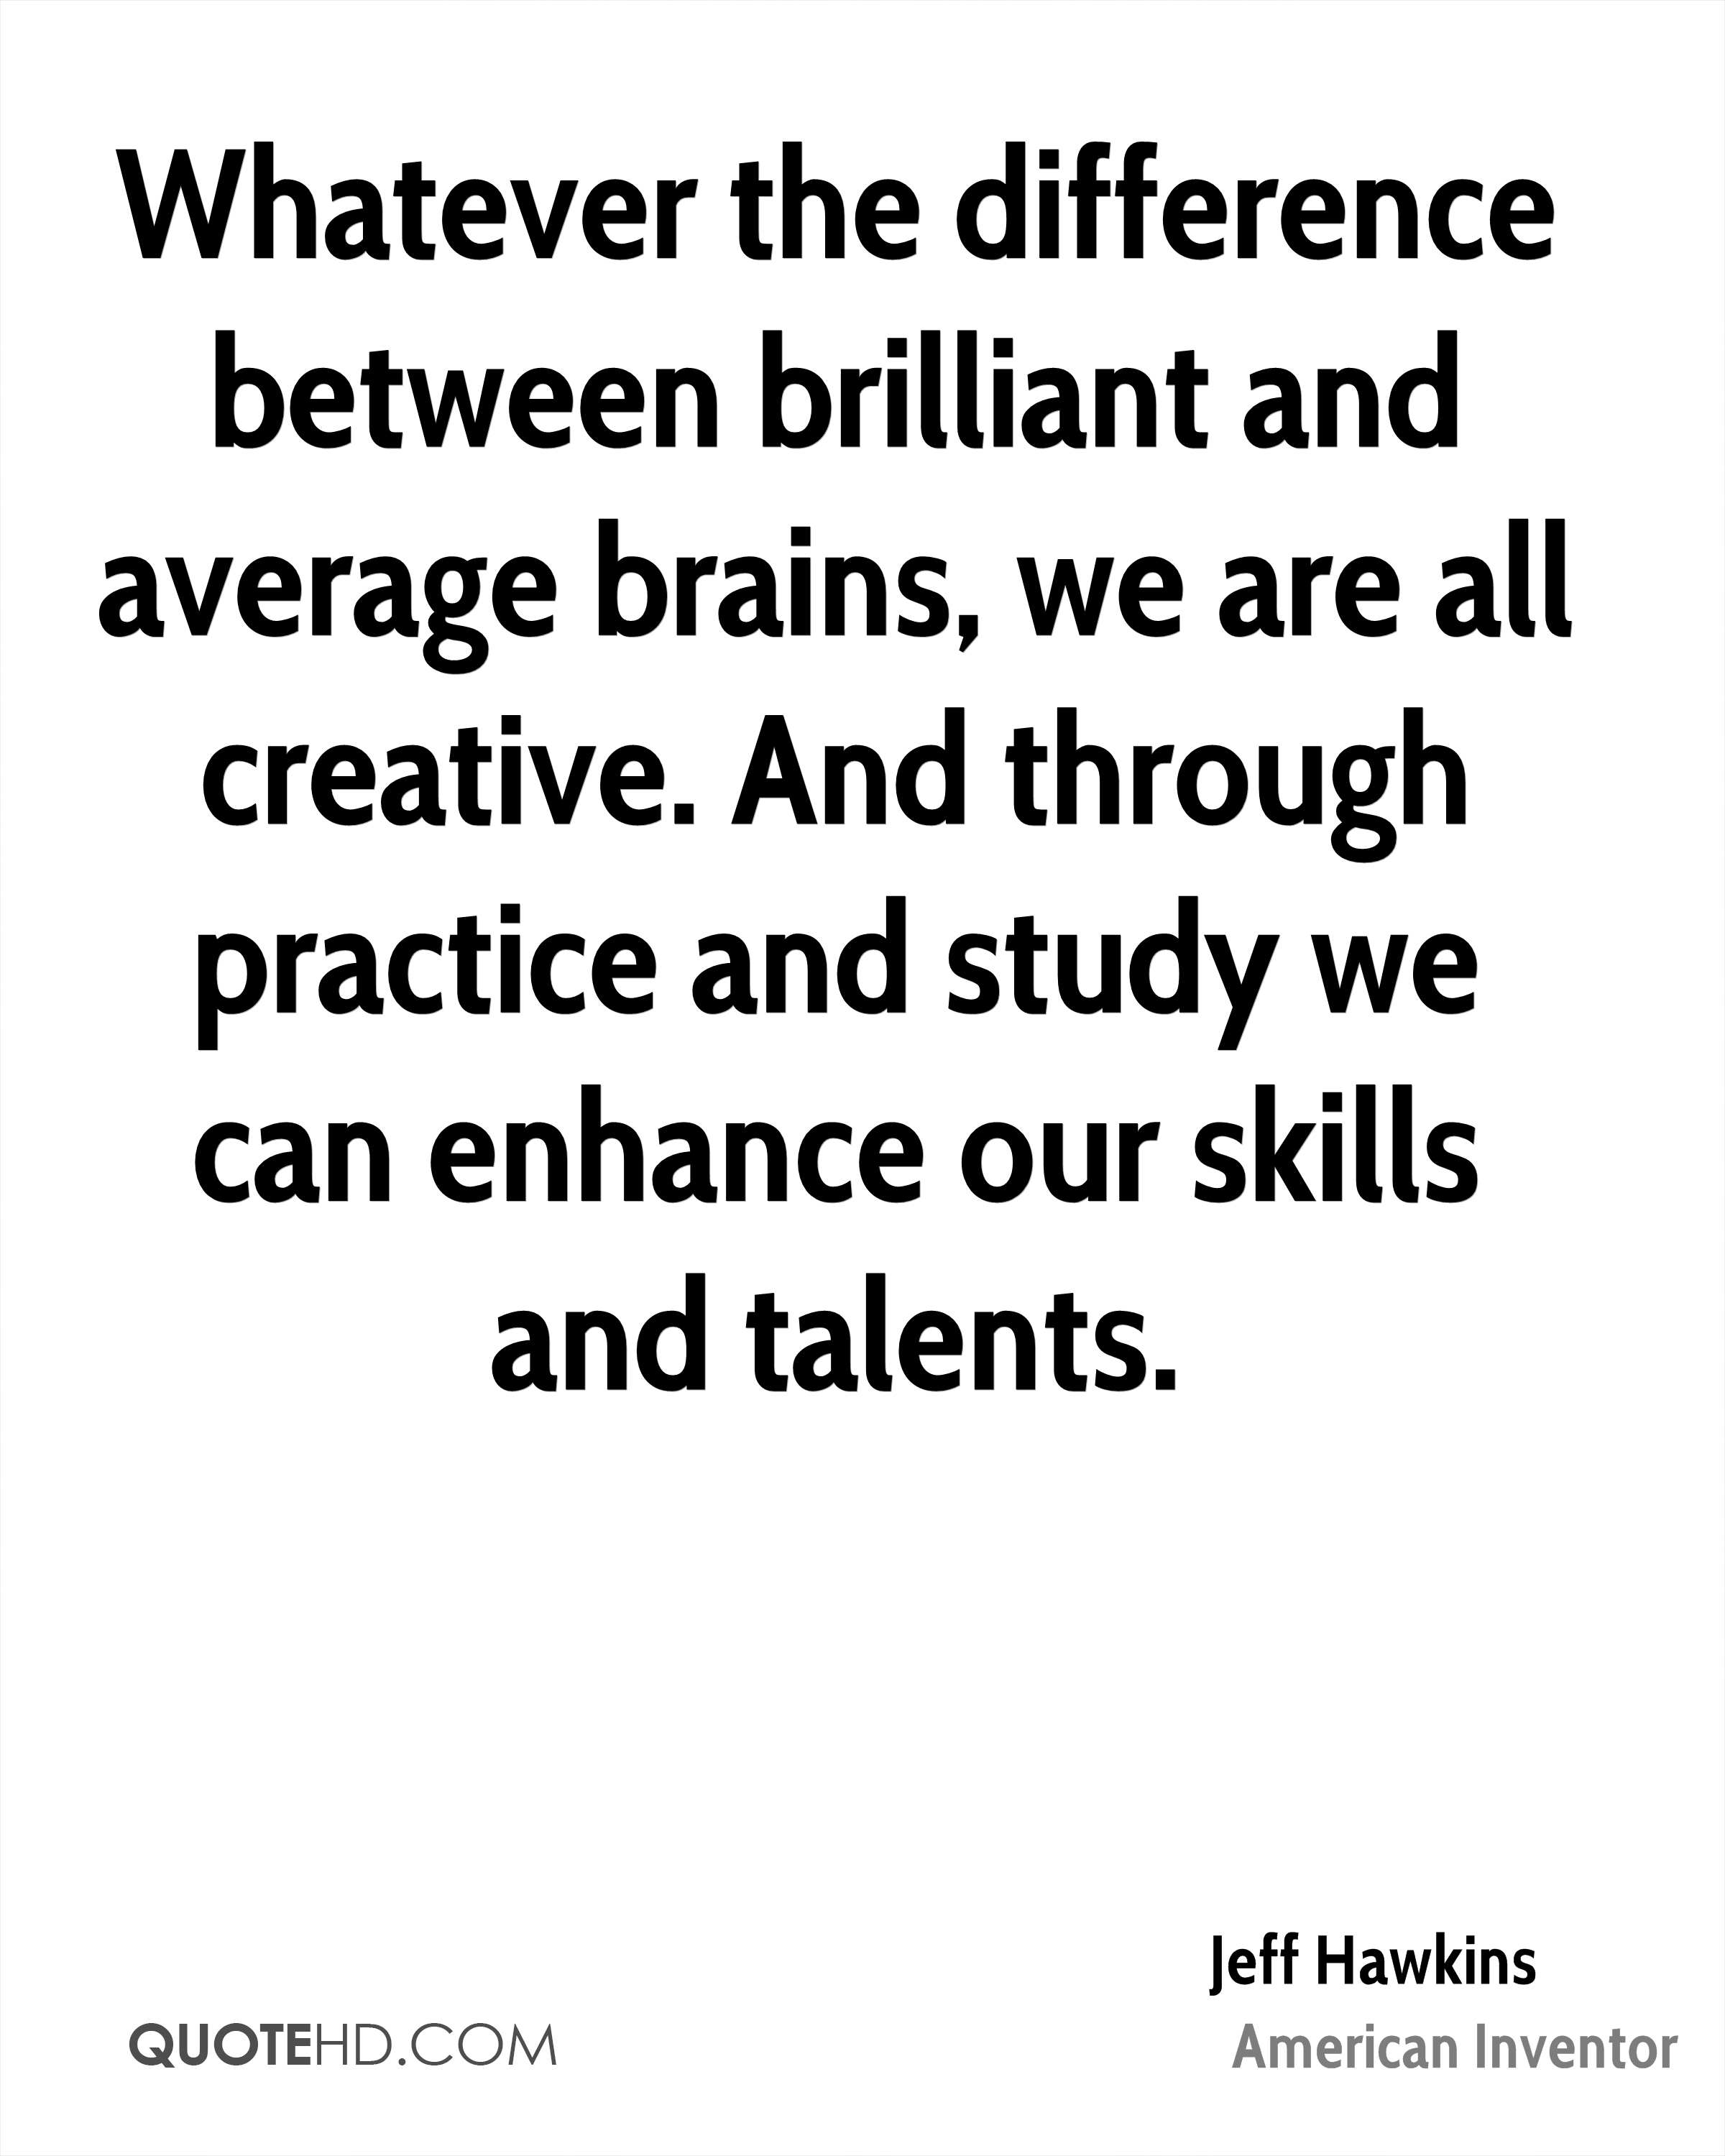 Whatever the difference between brilliant and average brains, we are all creative. And through practice and study we can enhance our skills and talents.